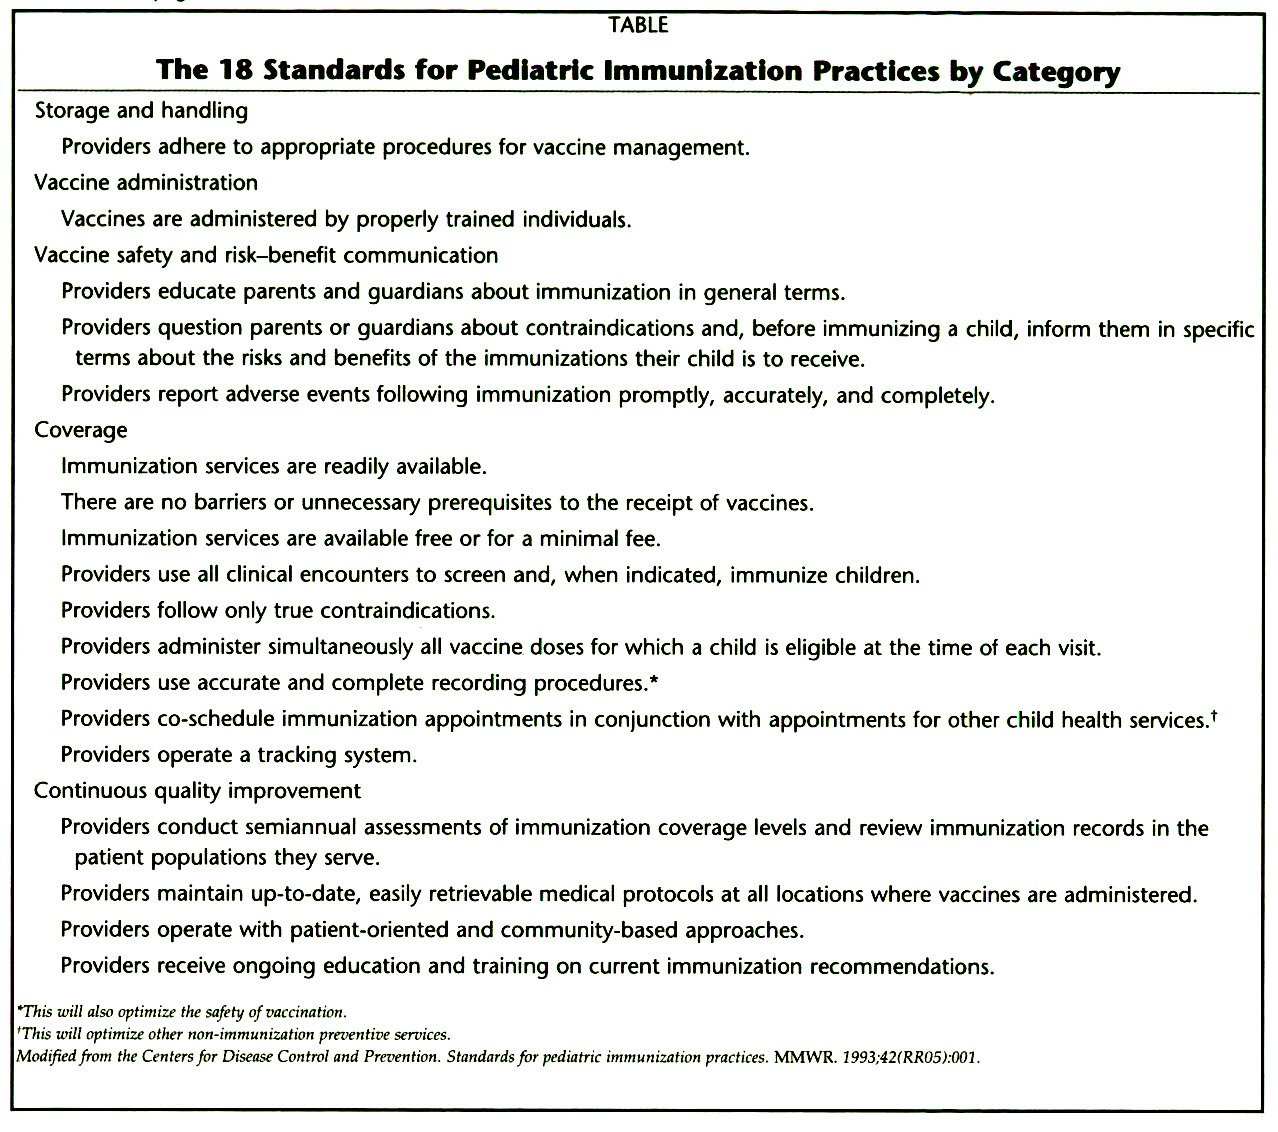 TABLEThe 18 Standards for Pediatric Immunization Practices by Category